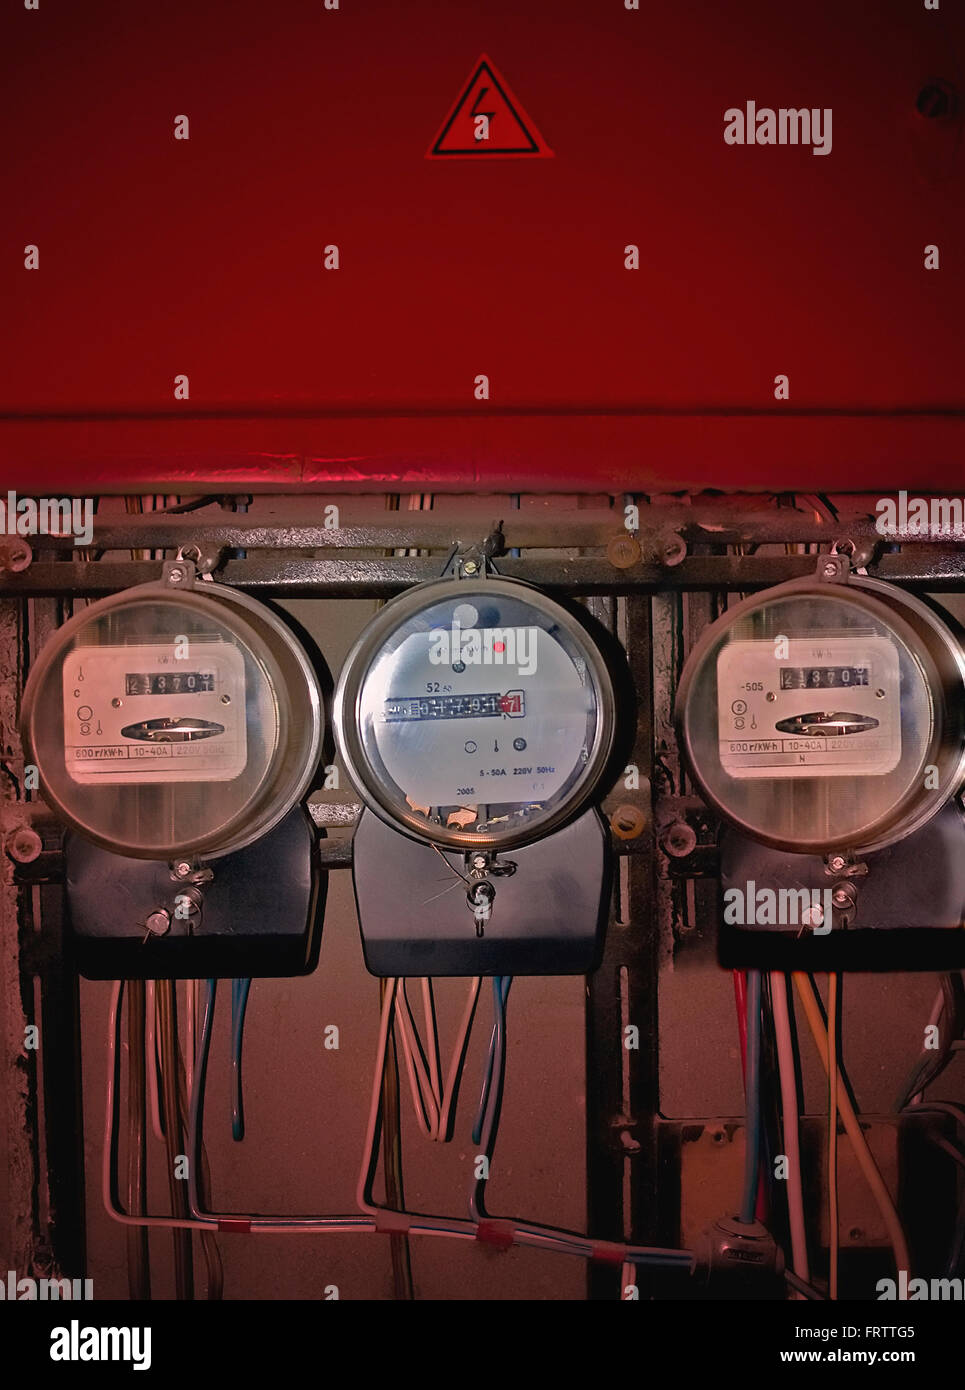 the electricity supply meters - Stock Image